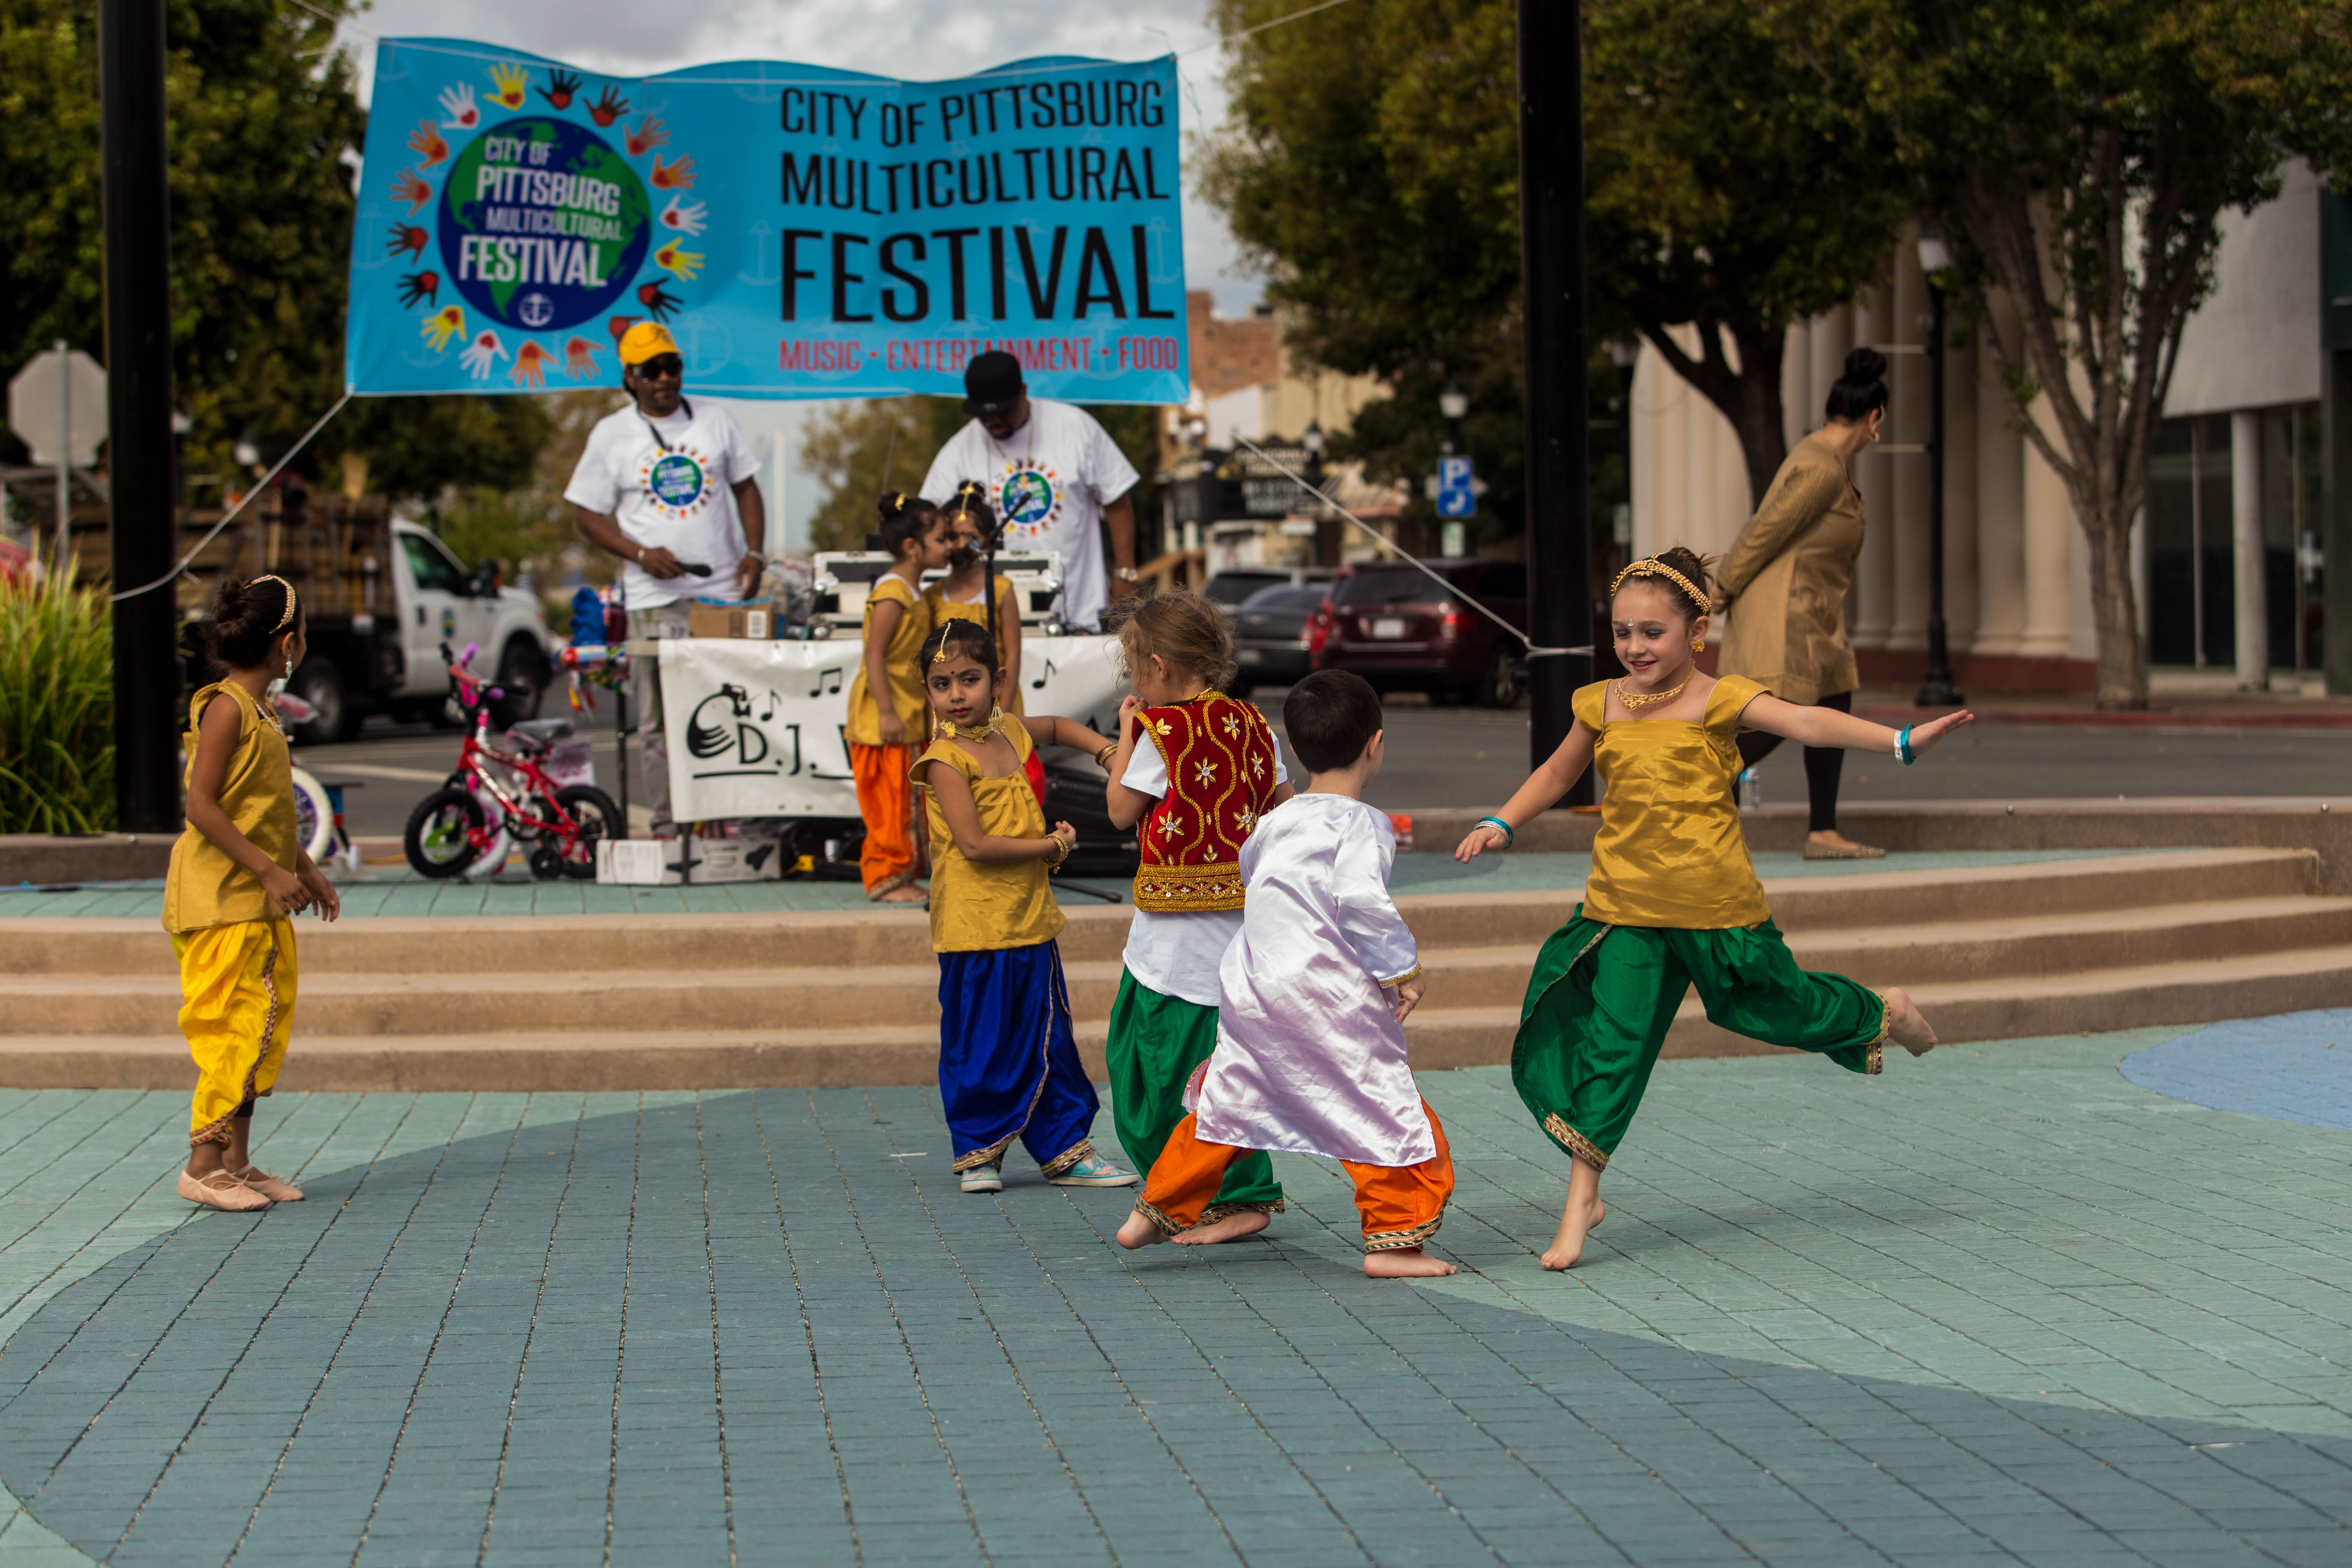 CITY_PITTSBURG_MULTICULTURAL_OCTOBER_2016 (658)